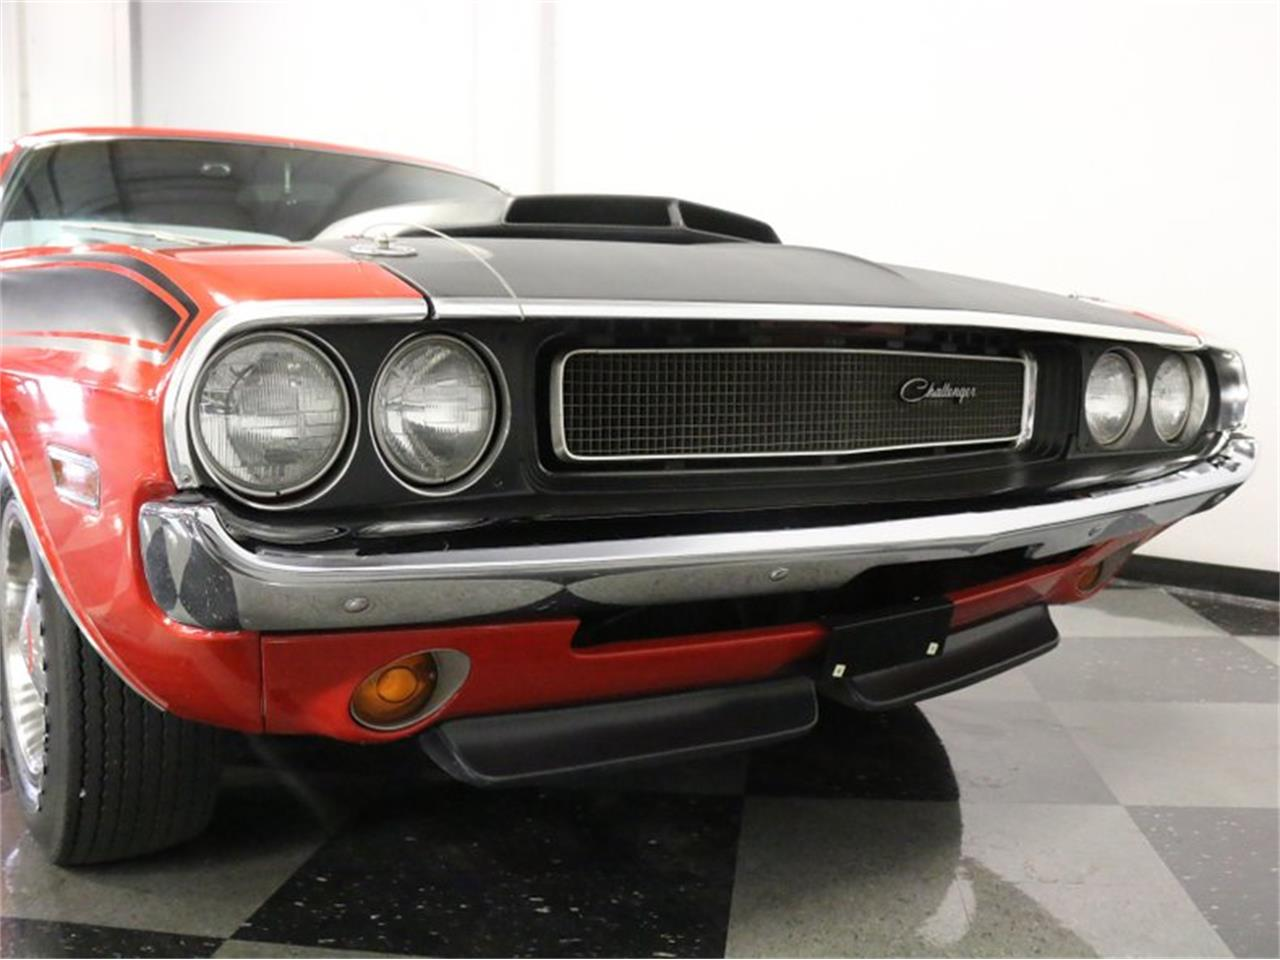 Large Picture of Classic 1970 Dodge Challenger T/A located in Texas Offered by Streetside Classics - Dallas / Fort Worth - N7CT